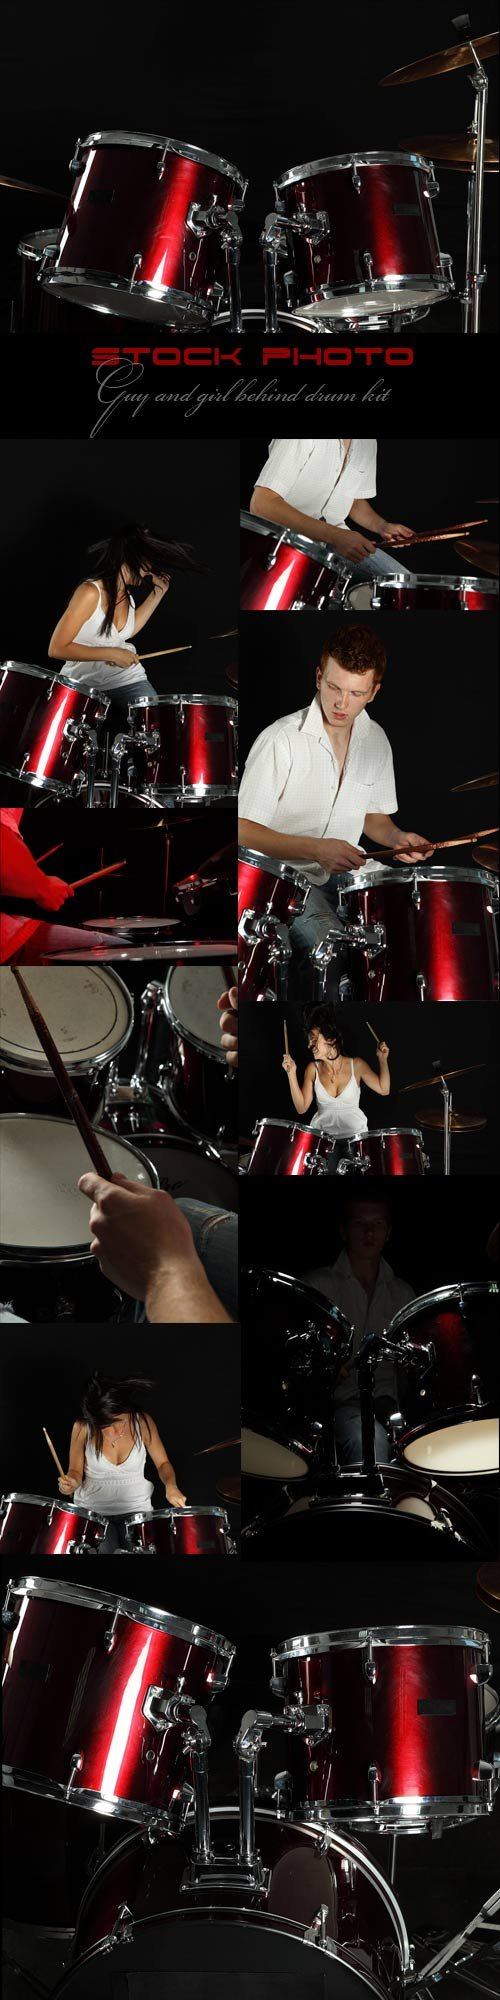 Guy and girl behind drum kit